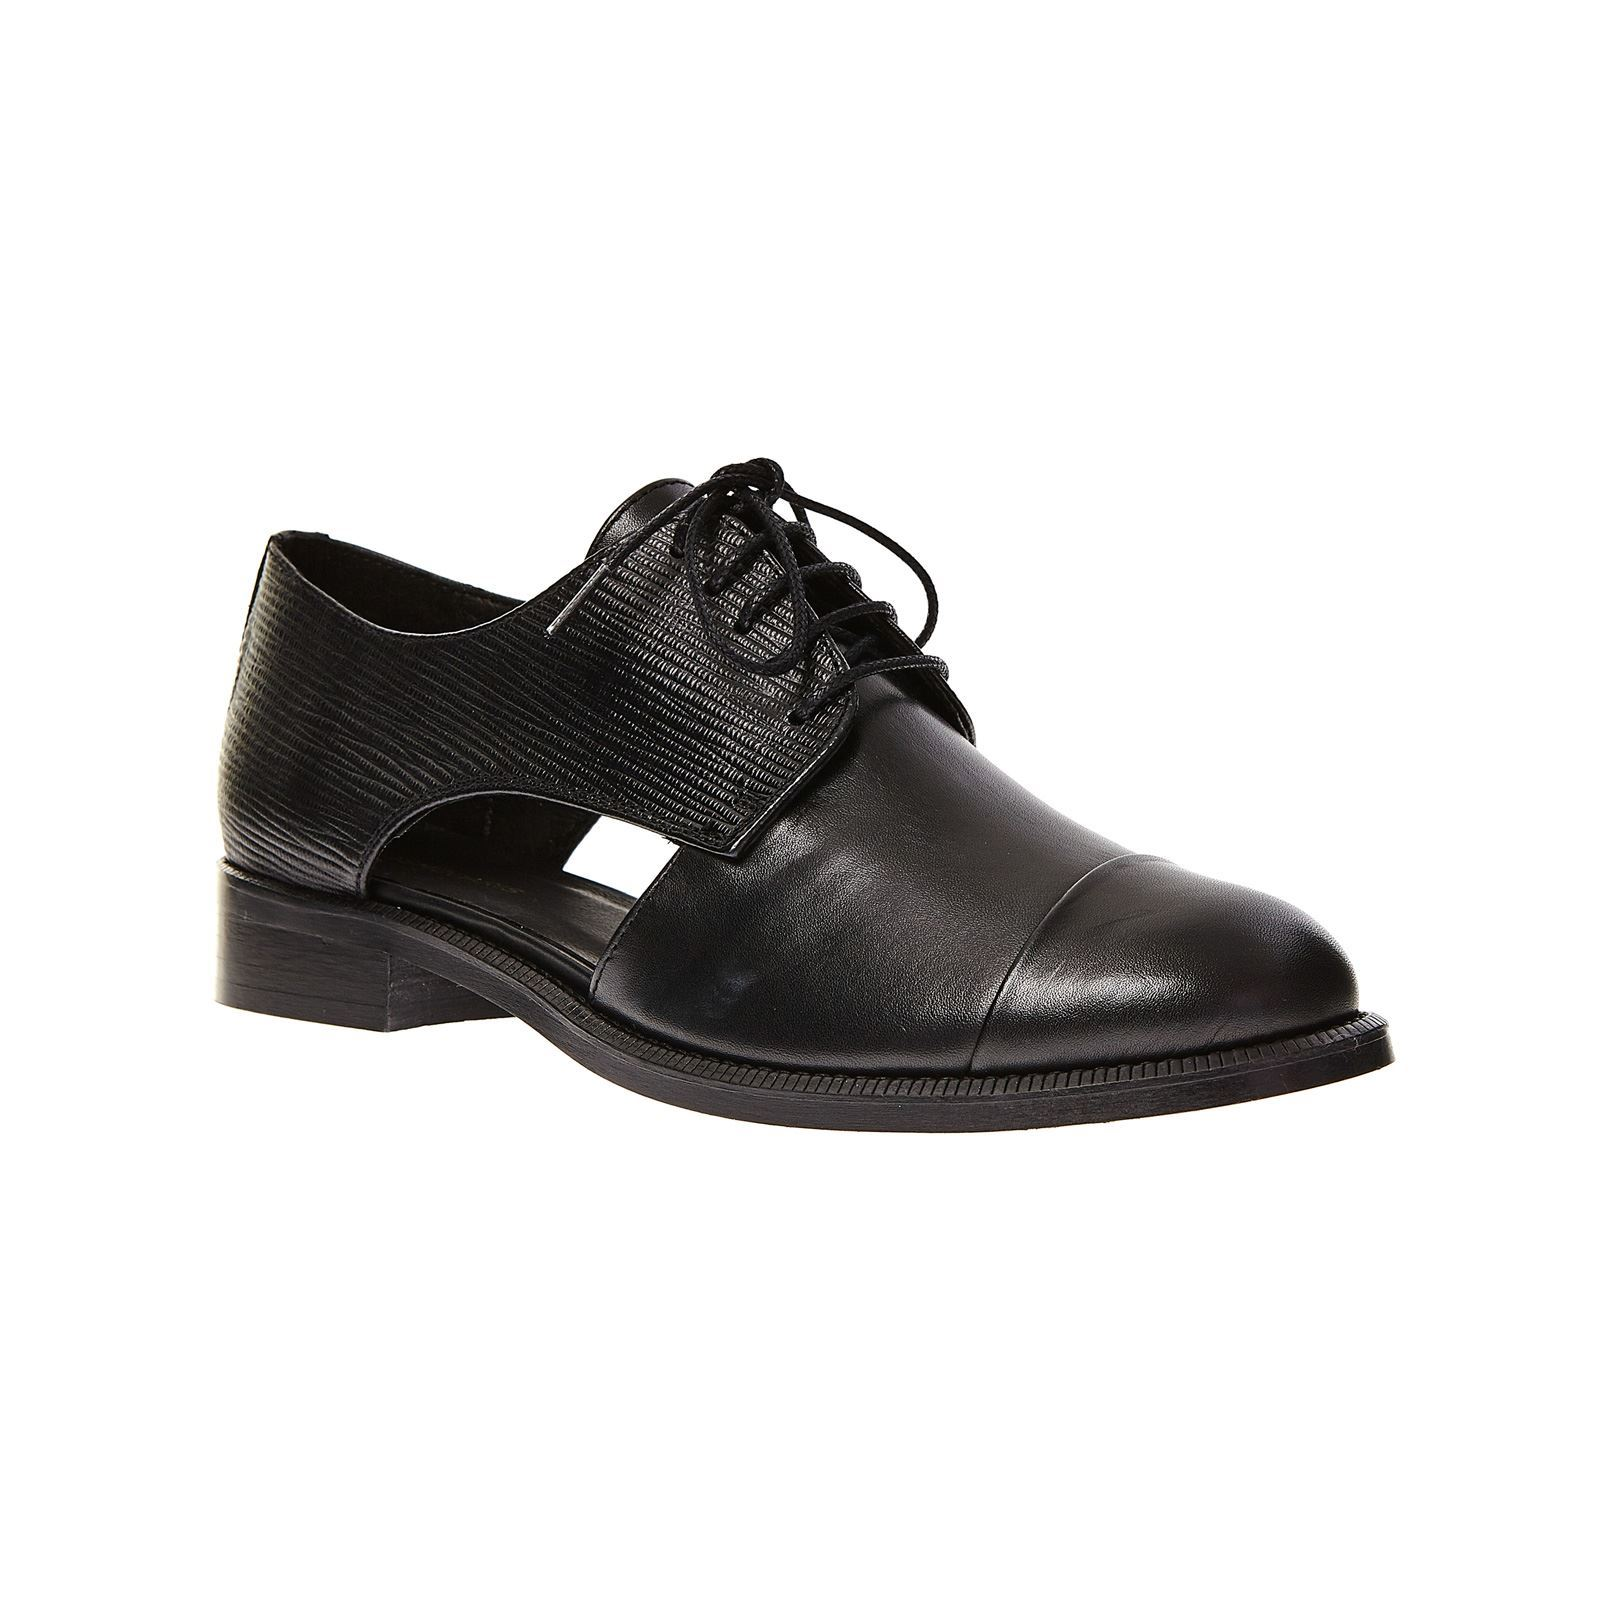 COSMOPARIS Elair - Derbies en cuir - noir Chaussures Ilse Jacobsen bleues Fashion femme  42 EU Babybotte Kool  Baskets mode femme - Bleu (Air Mesh 91) EU:37 (4 UK) (6.5 US) io7bqNIu